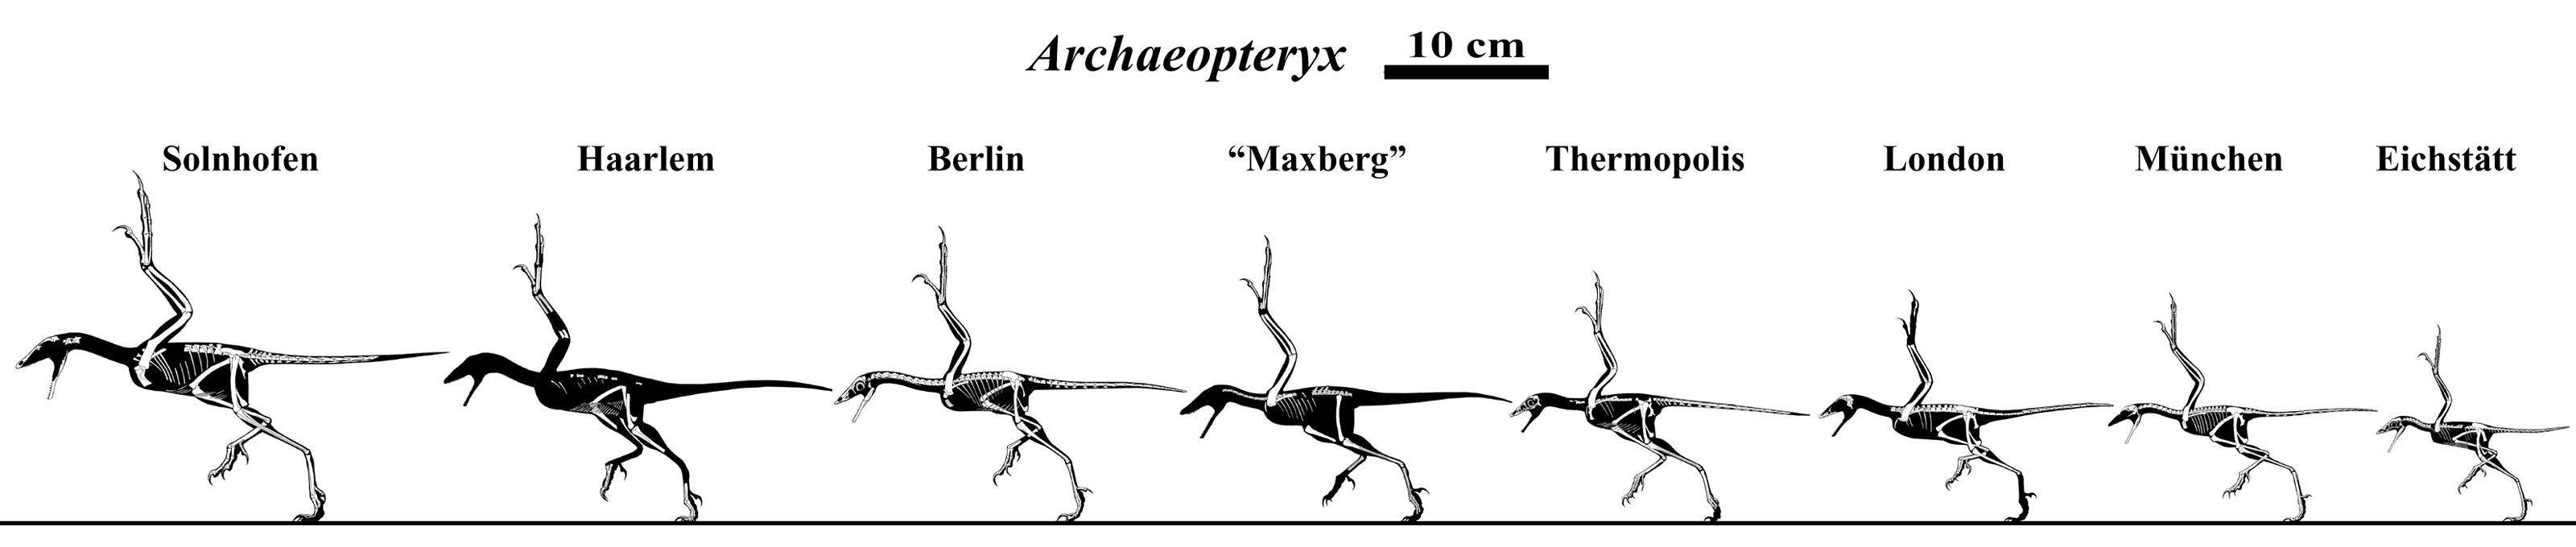 The Many Archaeopteryx by Qilong